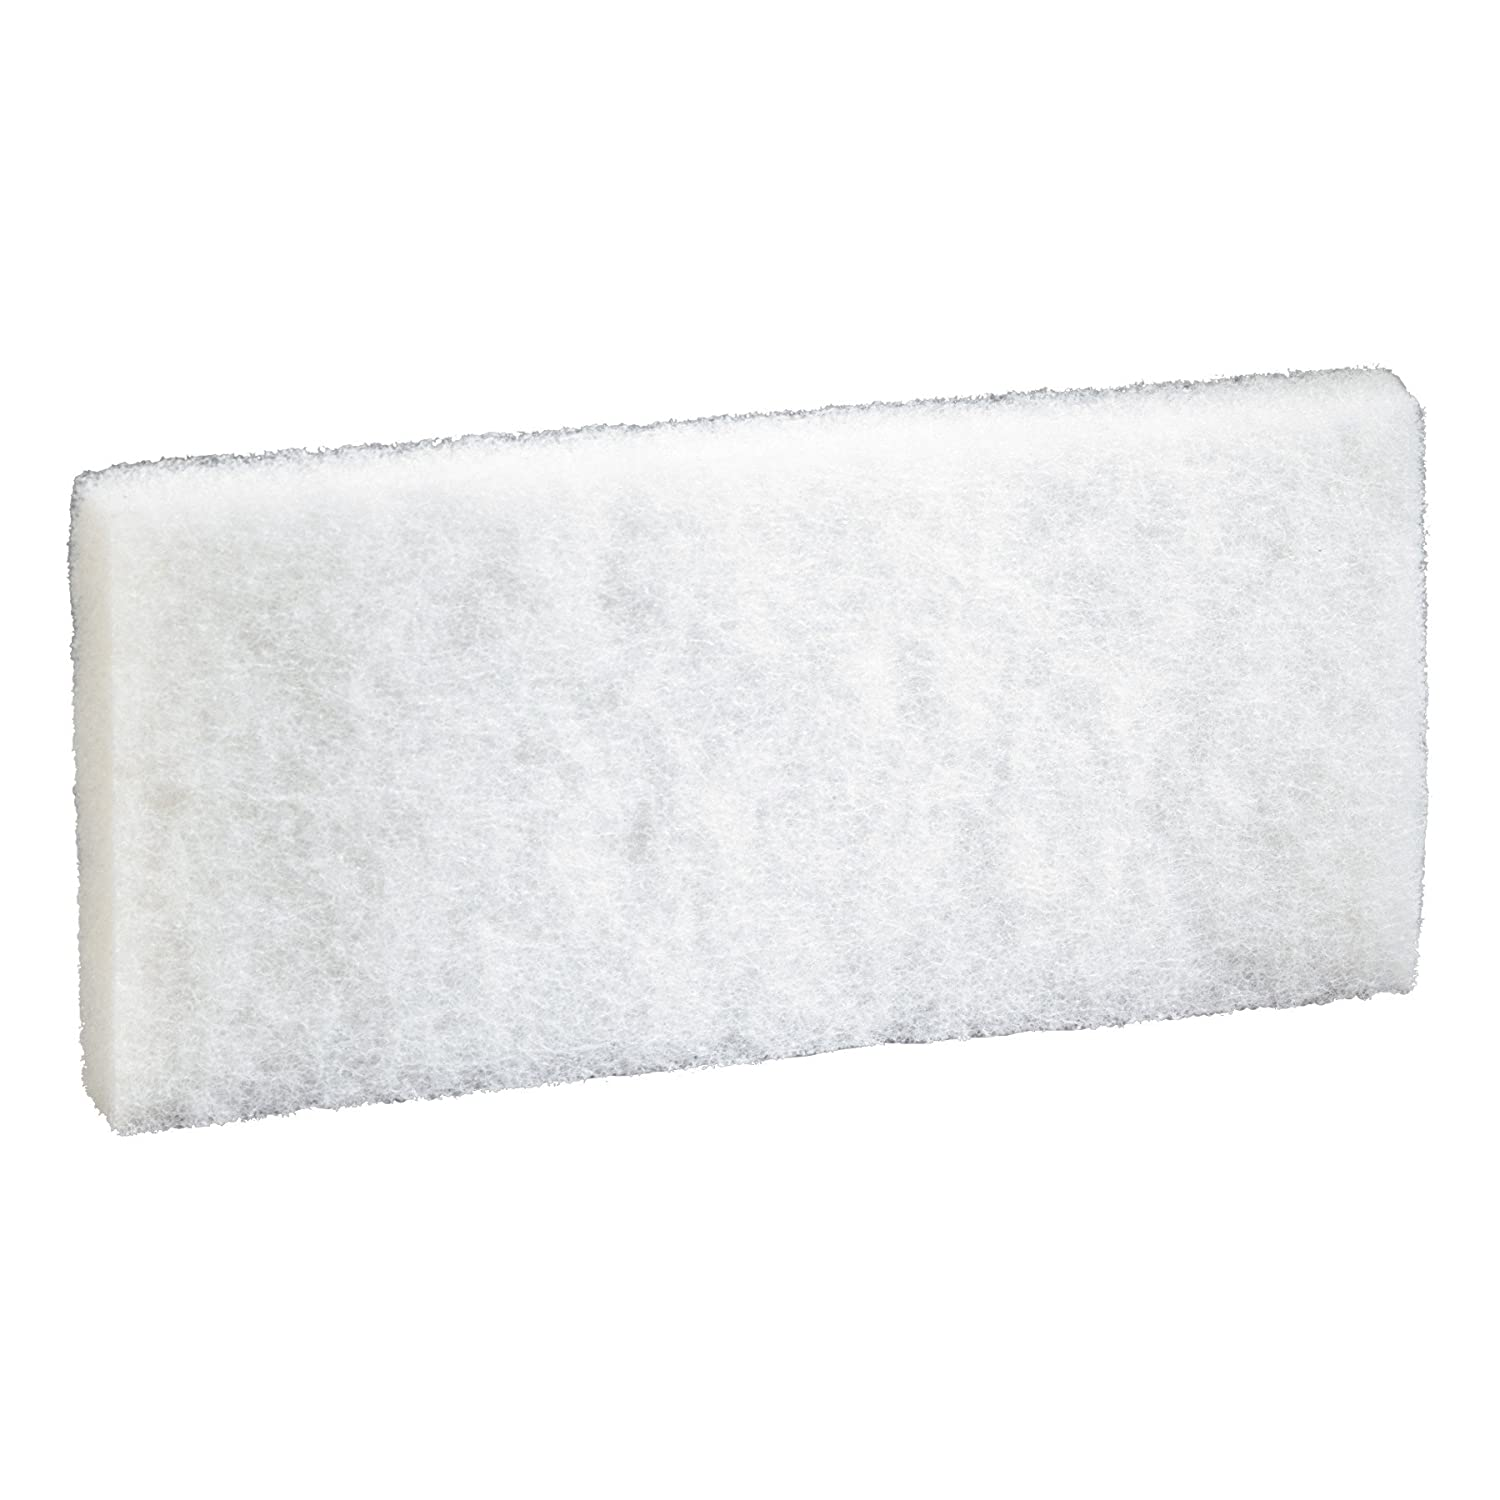 "1 Box 3M Doodlebug 08003 4.6/"" X 10/"" White Cleaning Pad 8440 5 Pads Per Box"